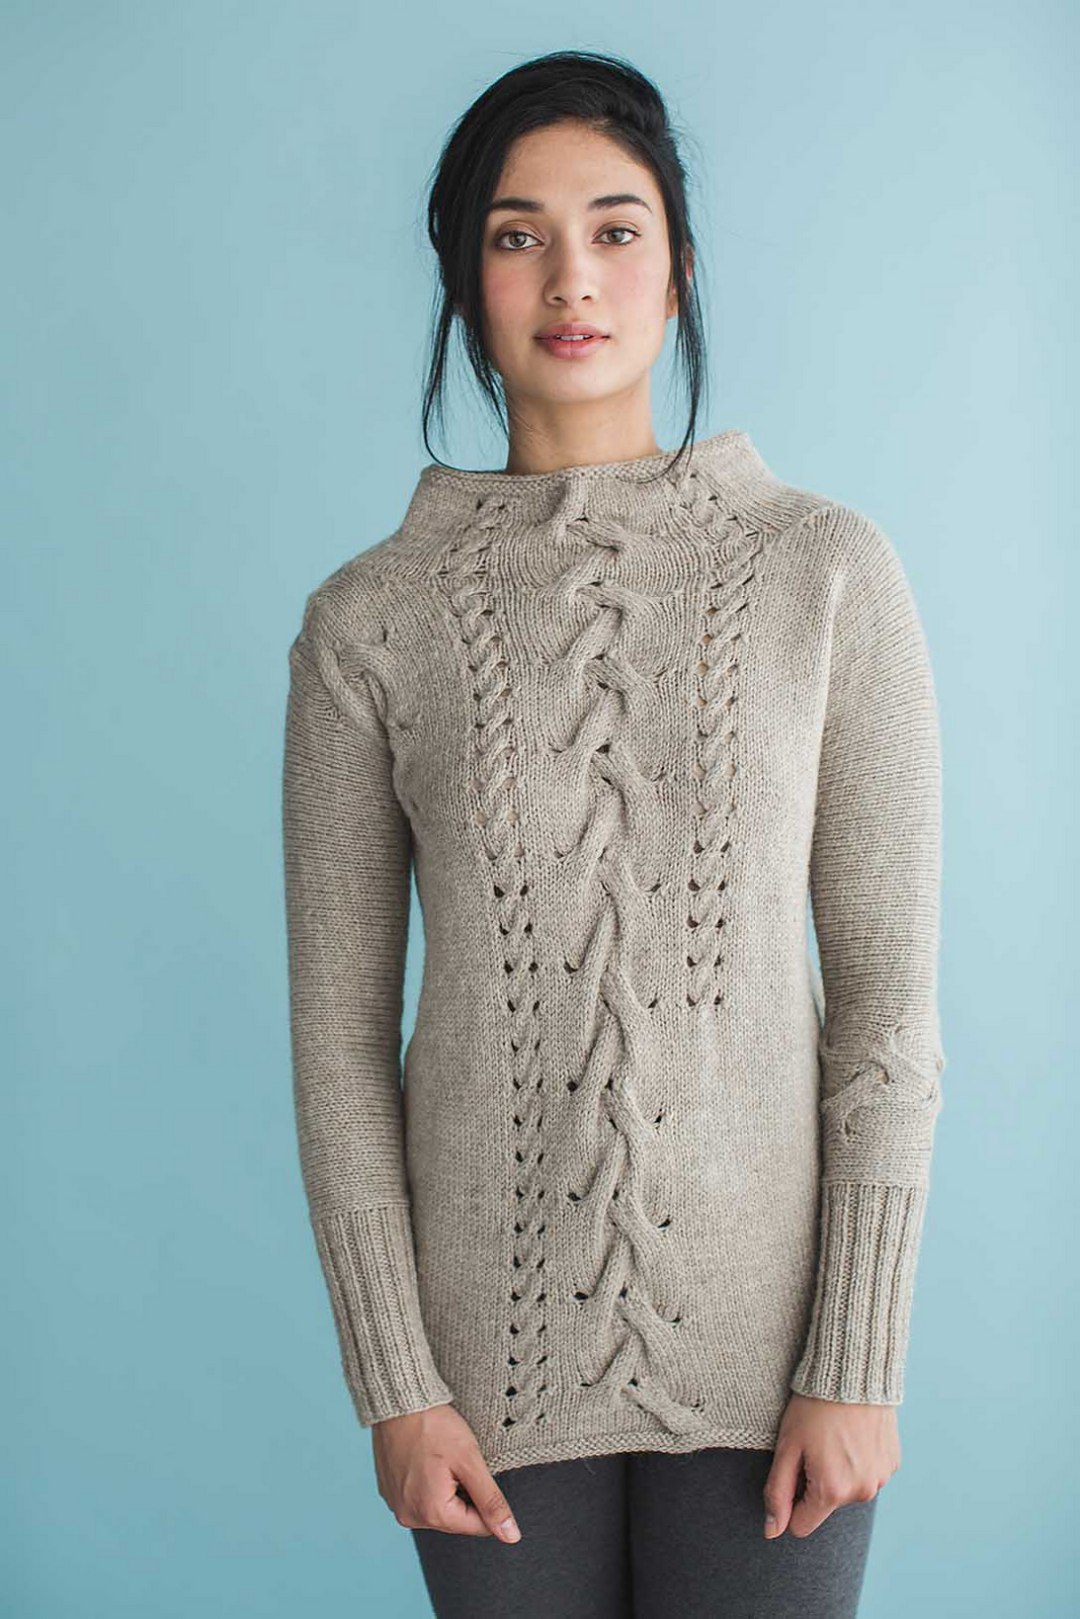 The Aspen Pullover, from Wool Studio Volume 4